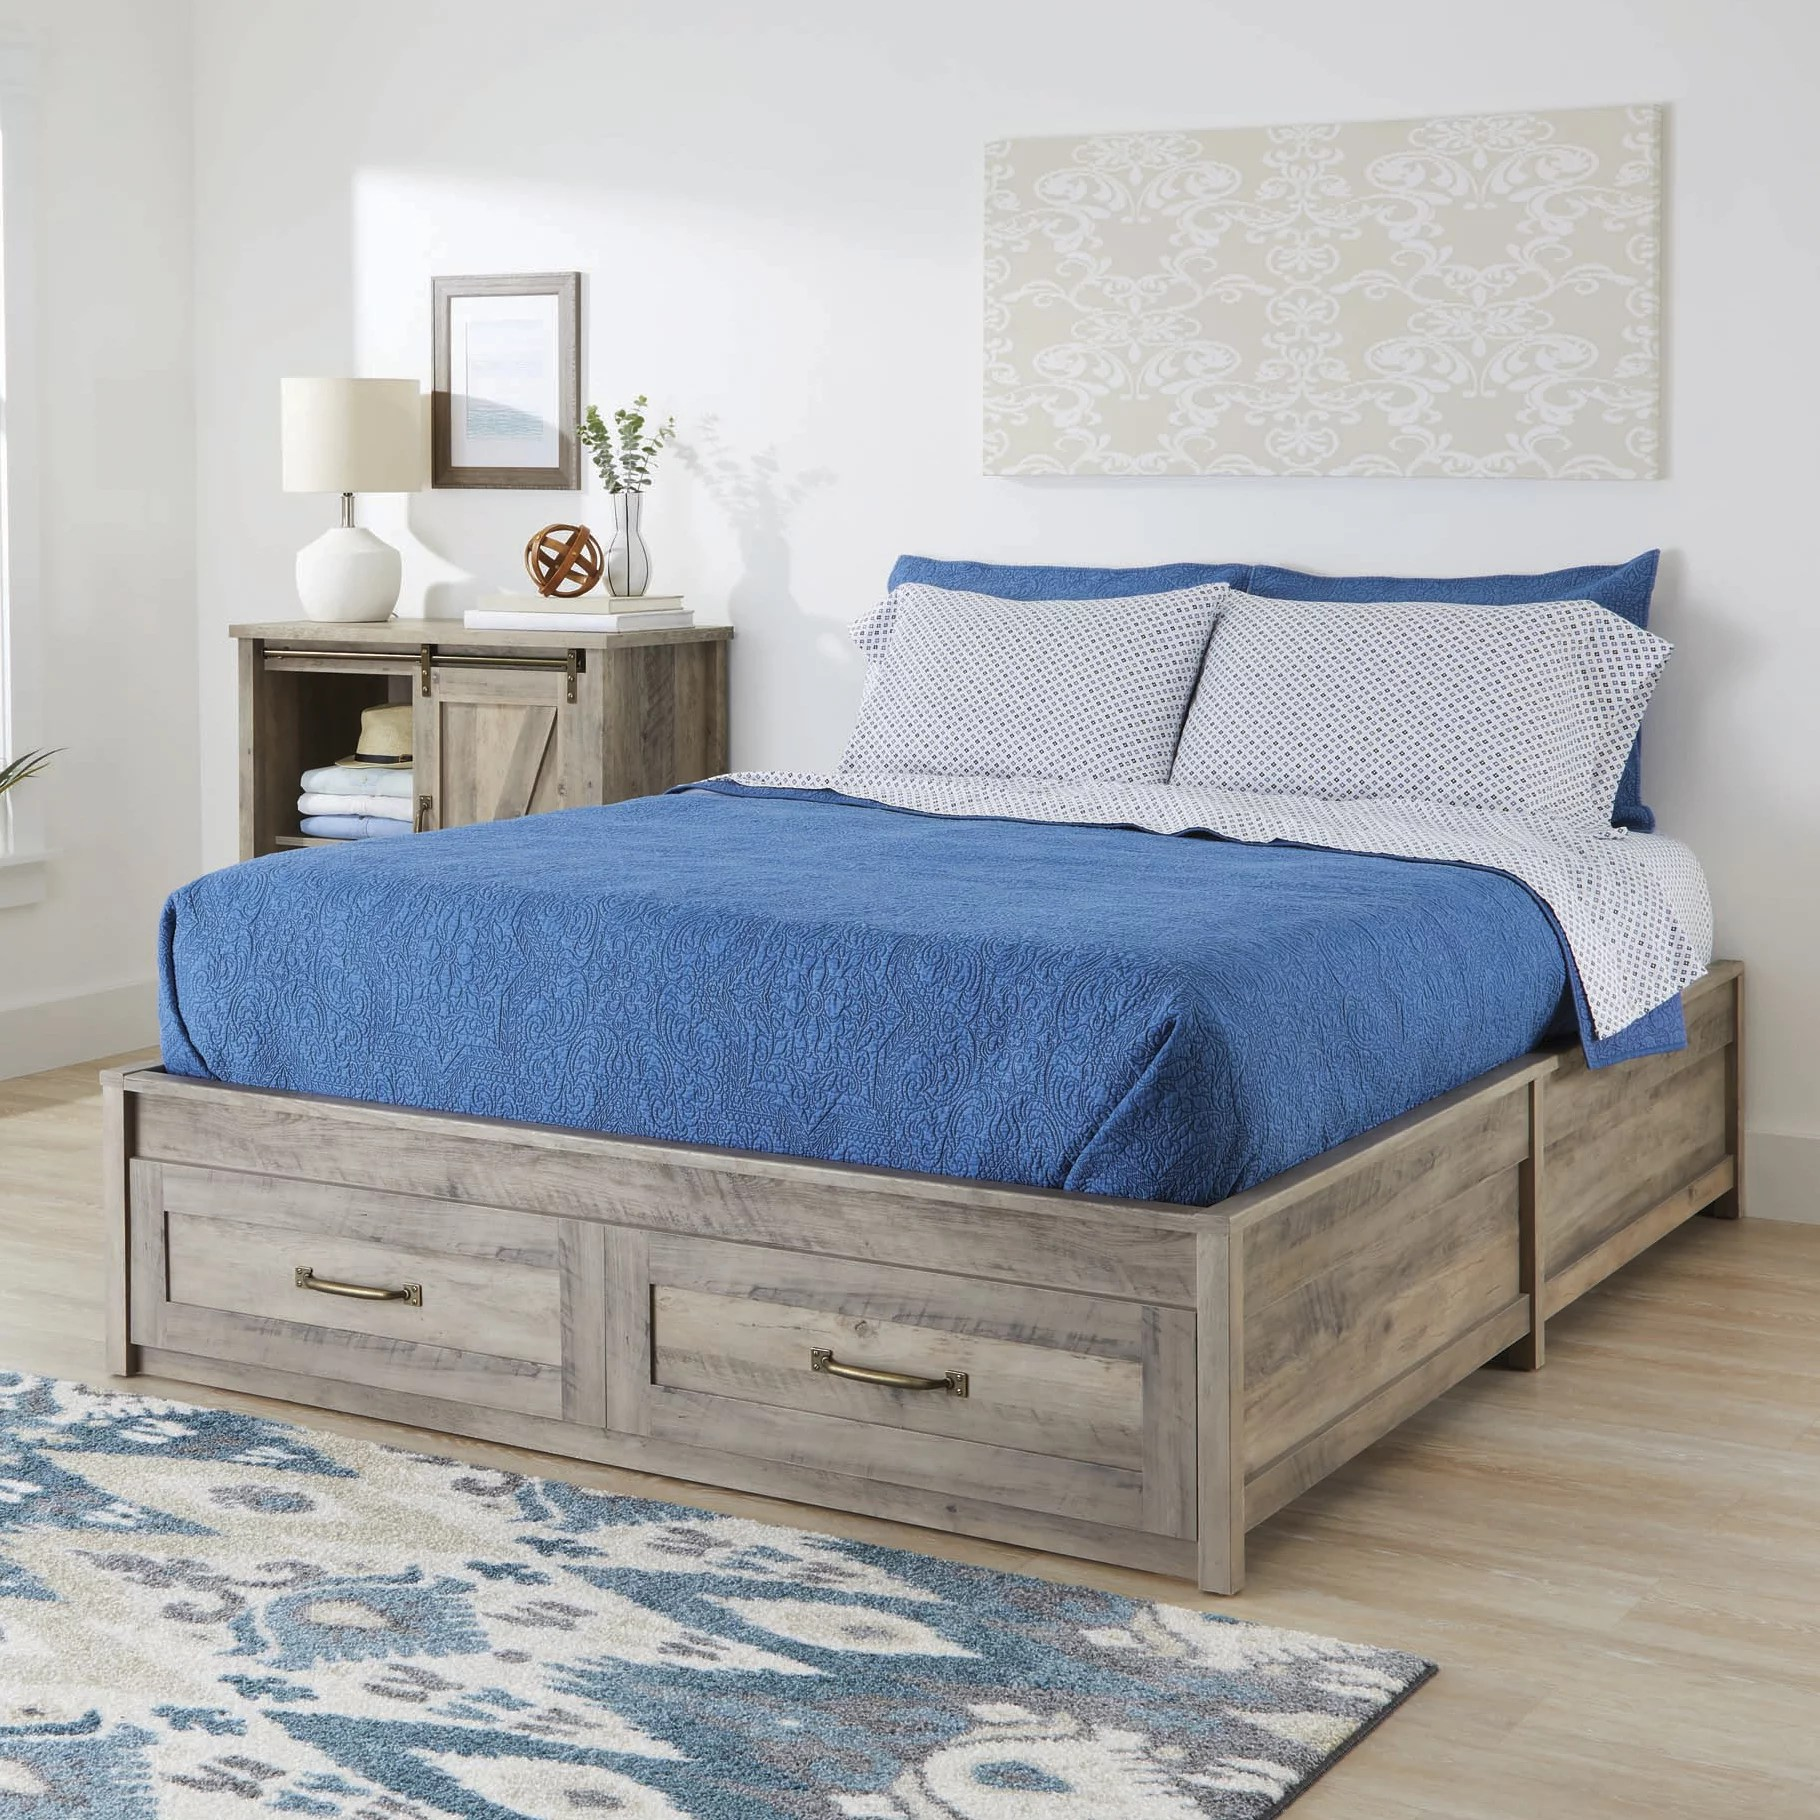 better homes gardens modern farmhouse queen platform bed with storage rustic gray finish